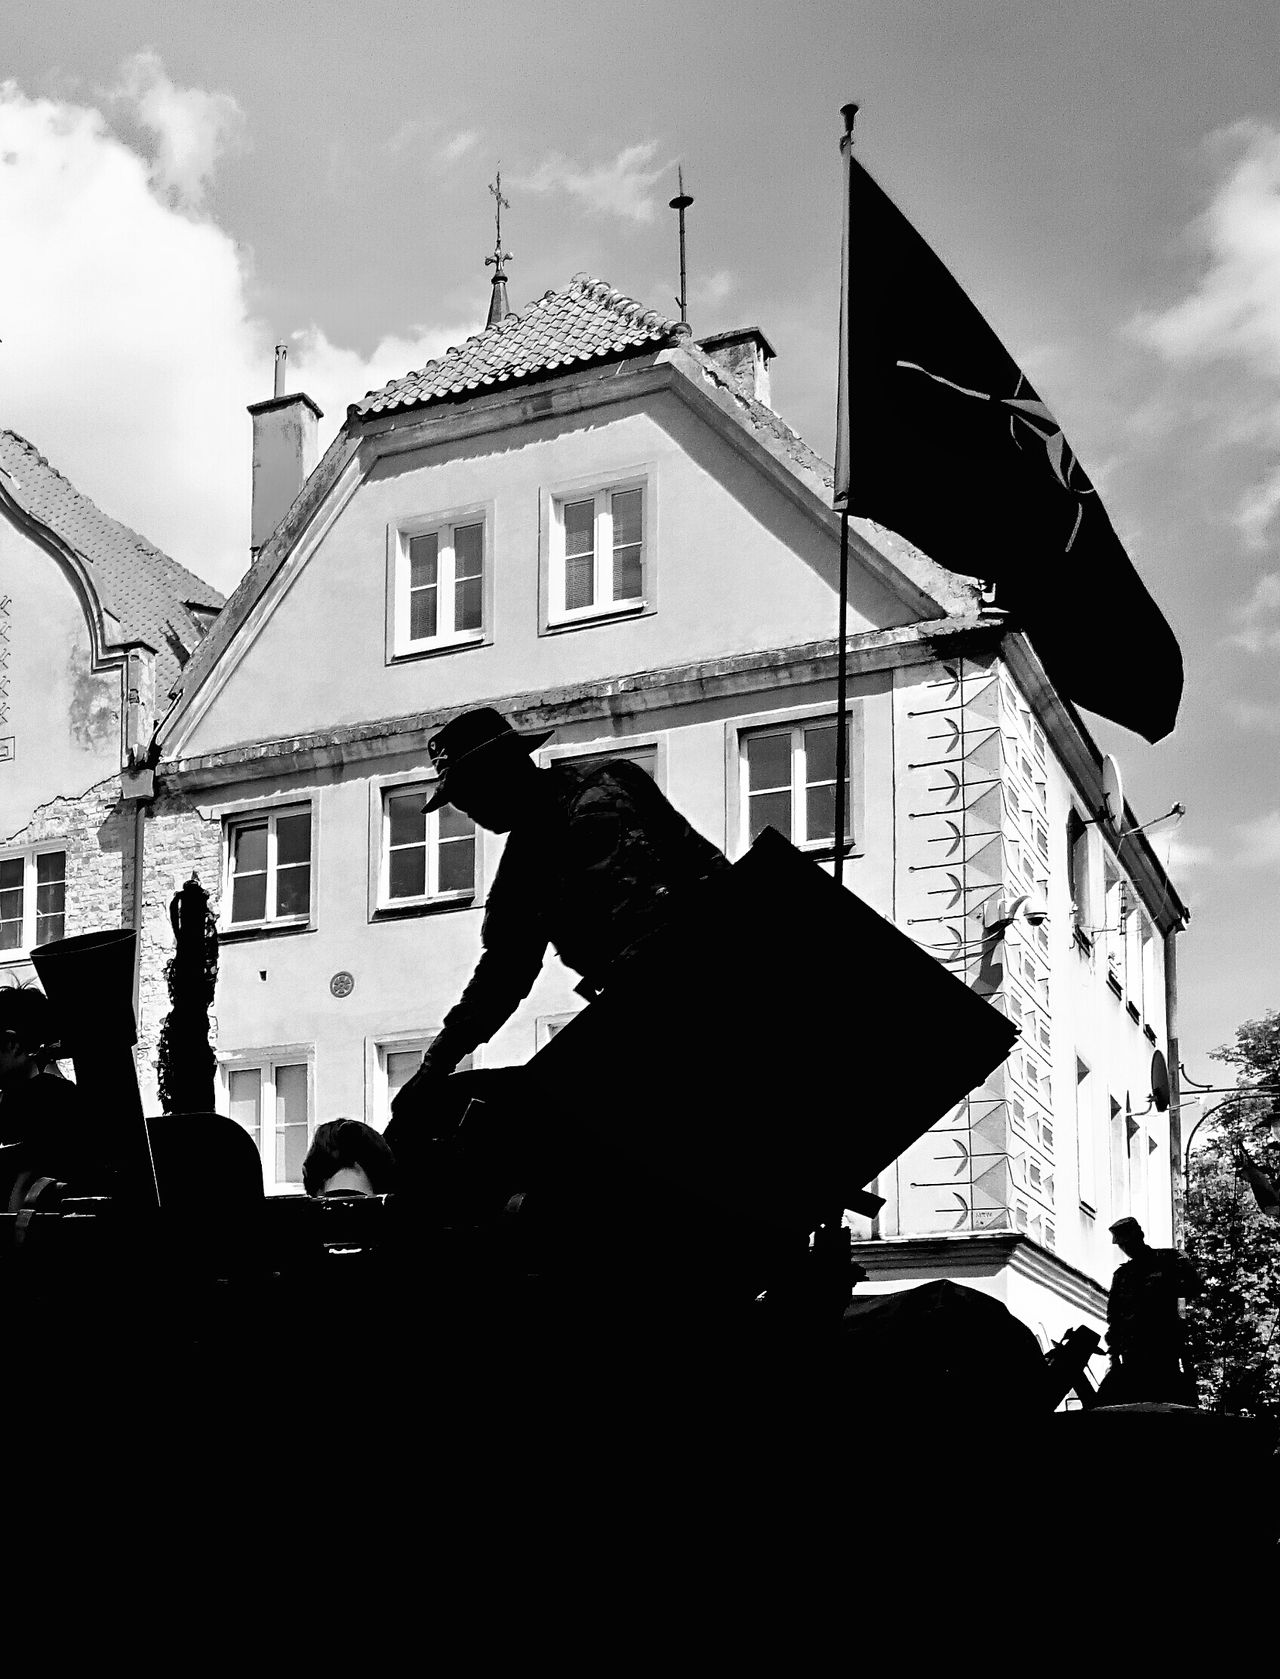 Silhouette Outdoors Architecture One Person One Man Only Built Structure Building Exterior Silhouettes Silhoutte Photography Silhouettes Of A City Silhouette Photography Soldier Soldiers Black & White Black And White NATO Flag